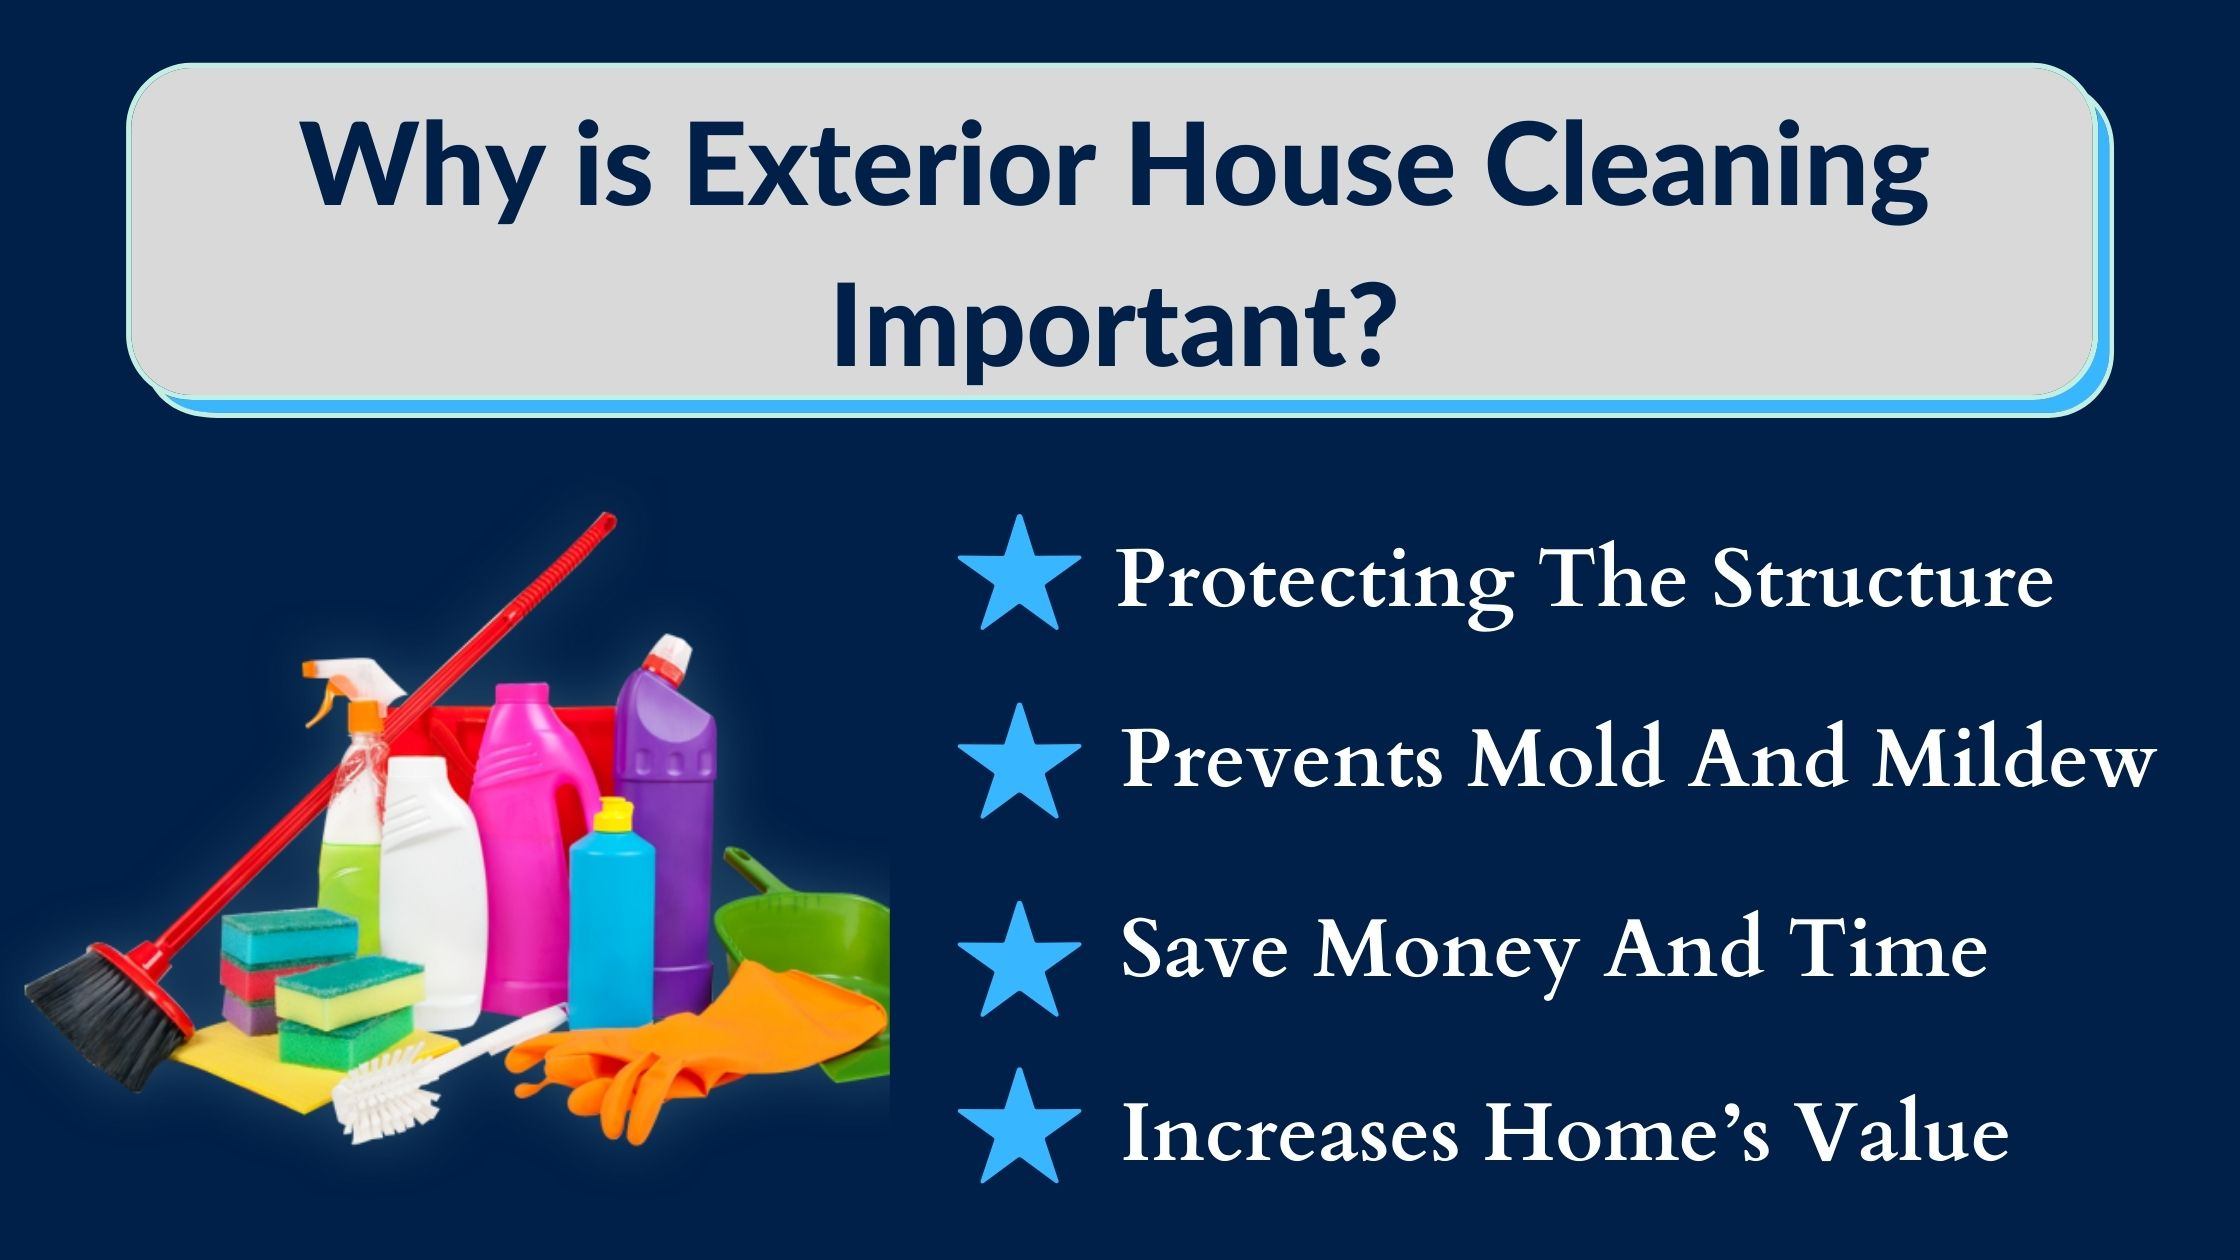 Why Is Exterior House Cleaning Important